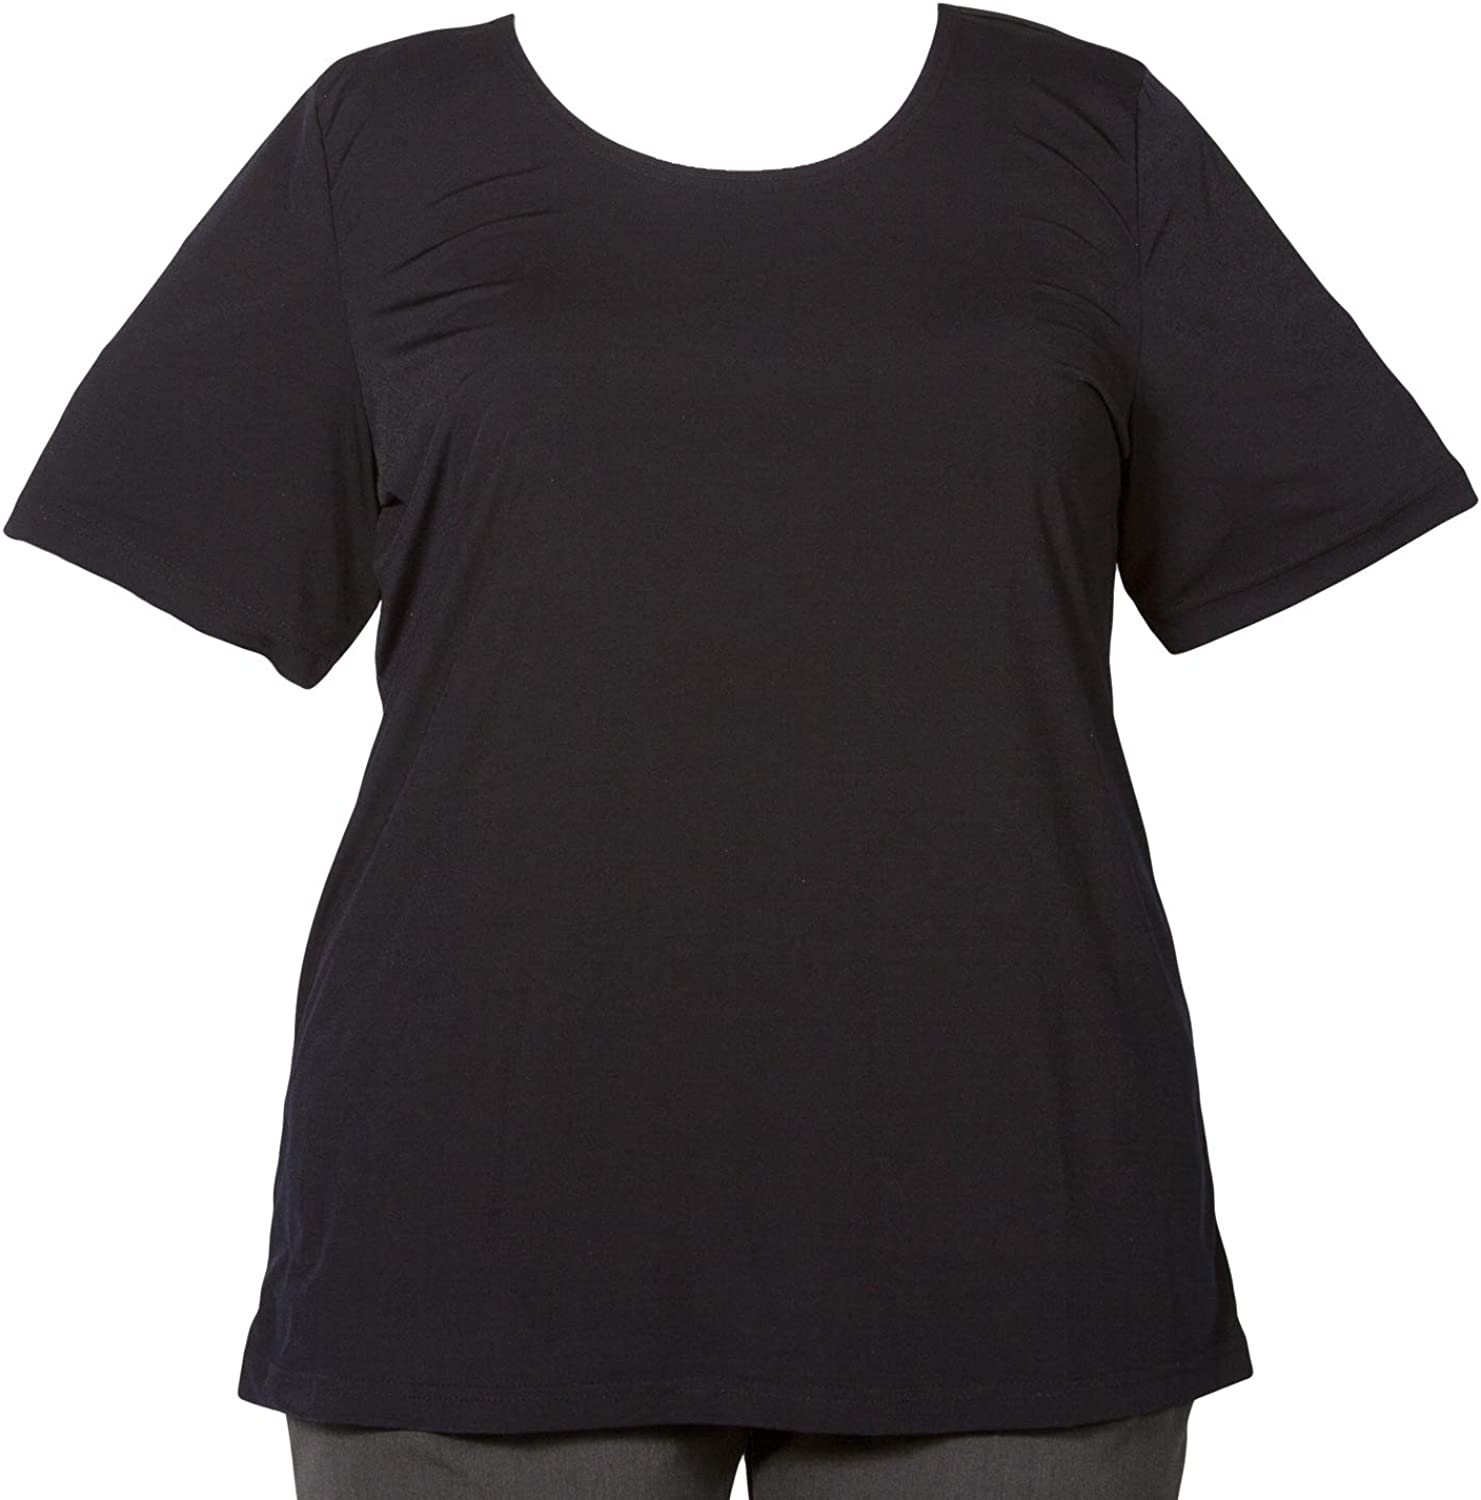 Black All items in the store Round Neck Pullover Woman's Plus Top safety Size